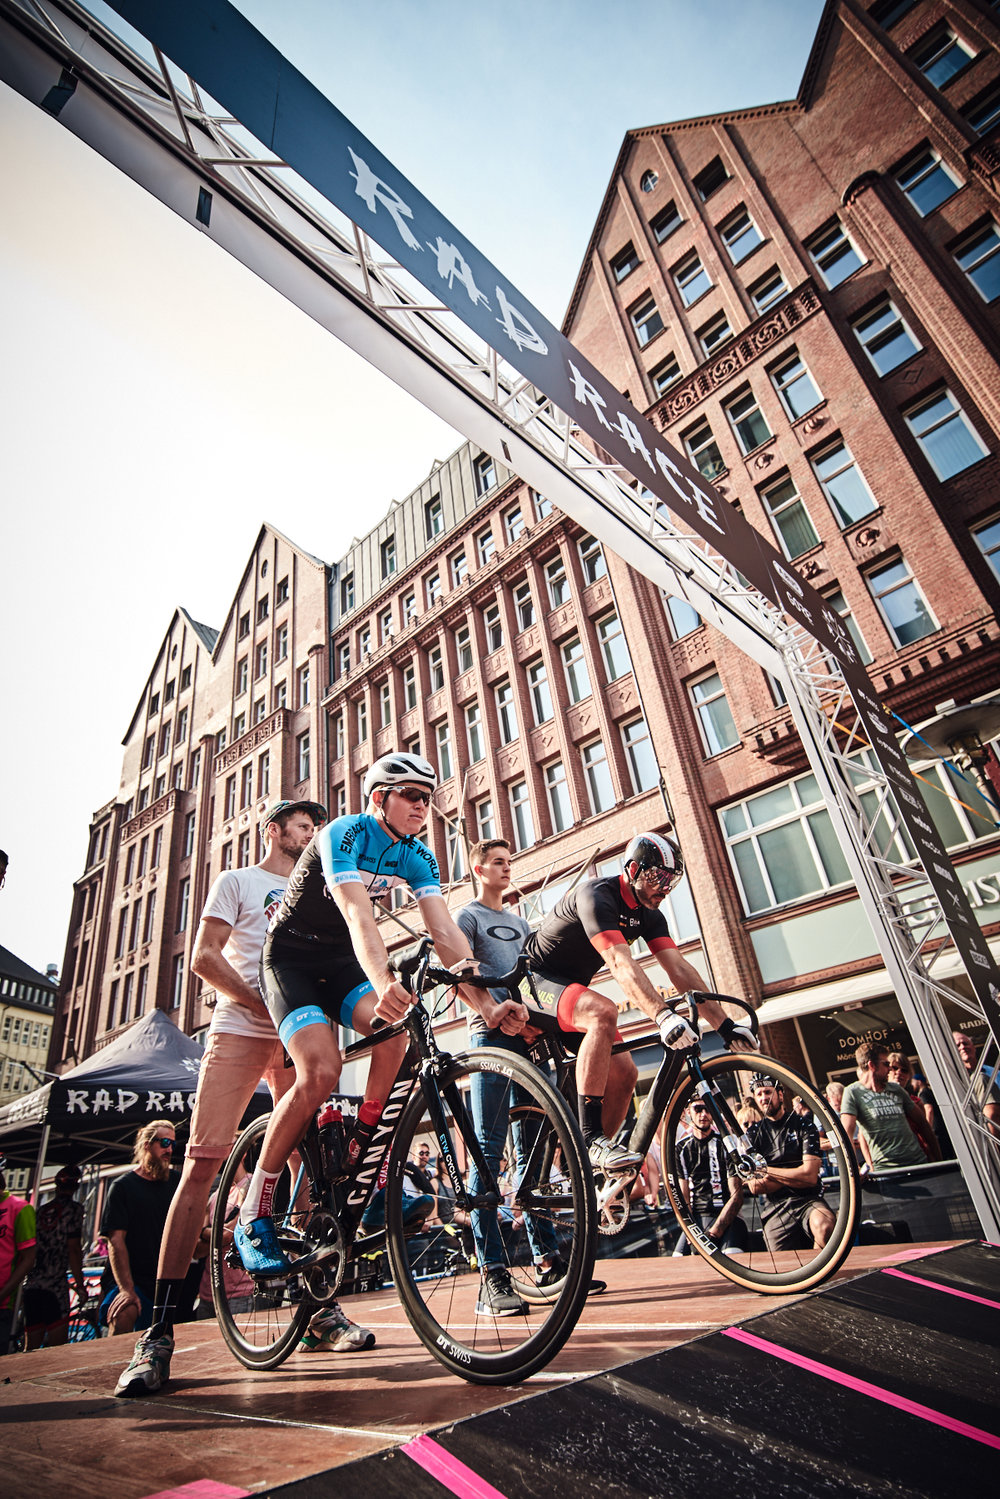 RADRACE_BATTLE_HAMBURG_Bjoern.Reschabek_048.jpg